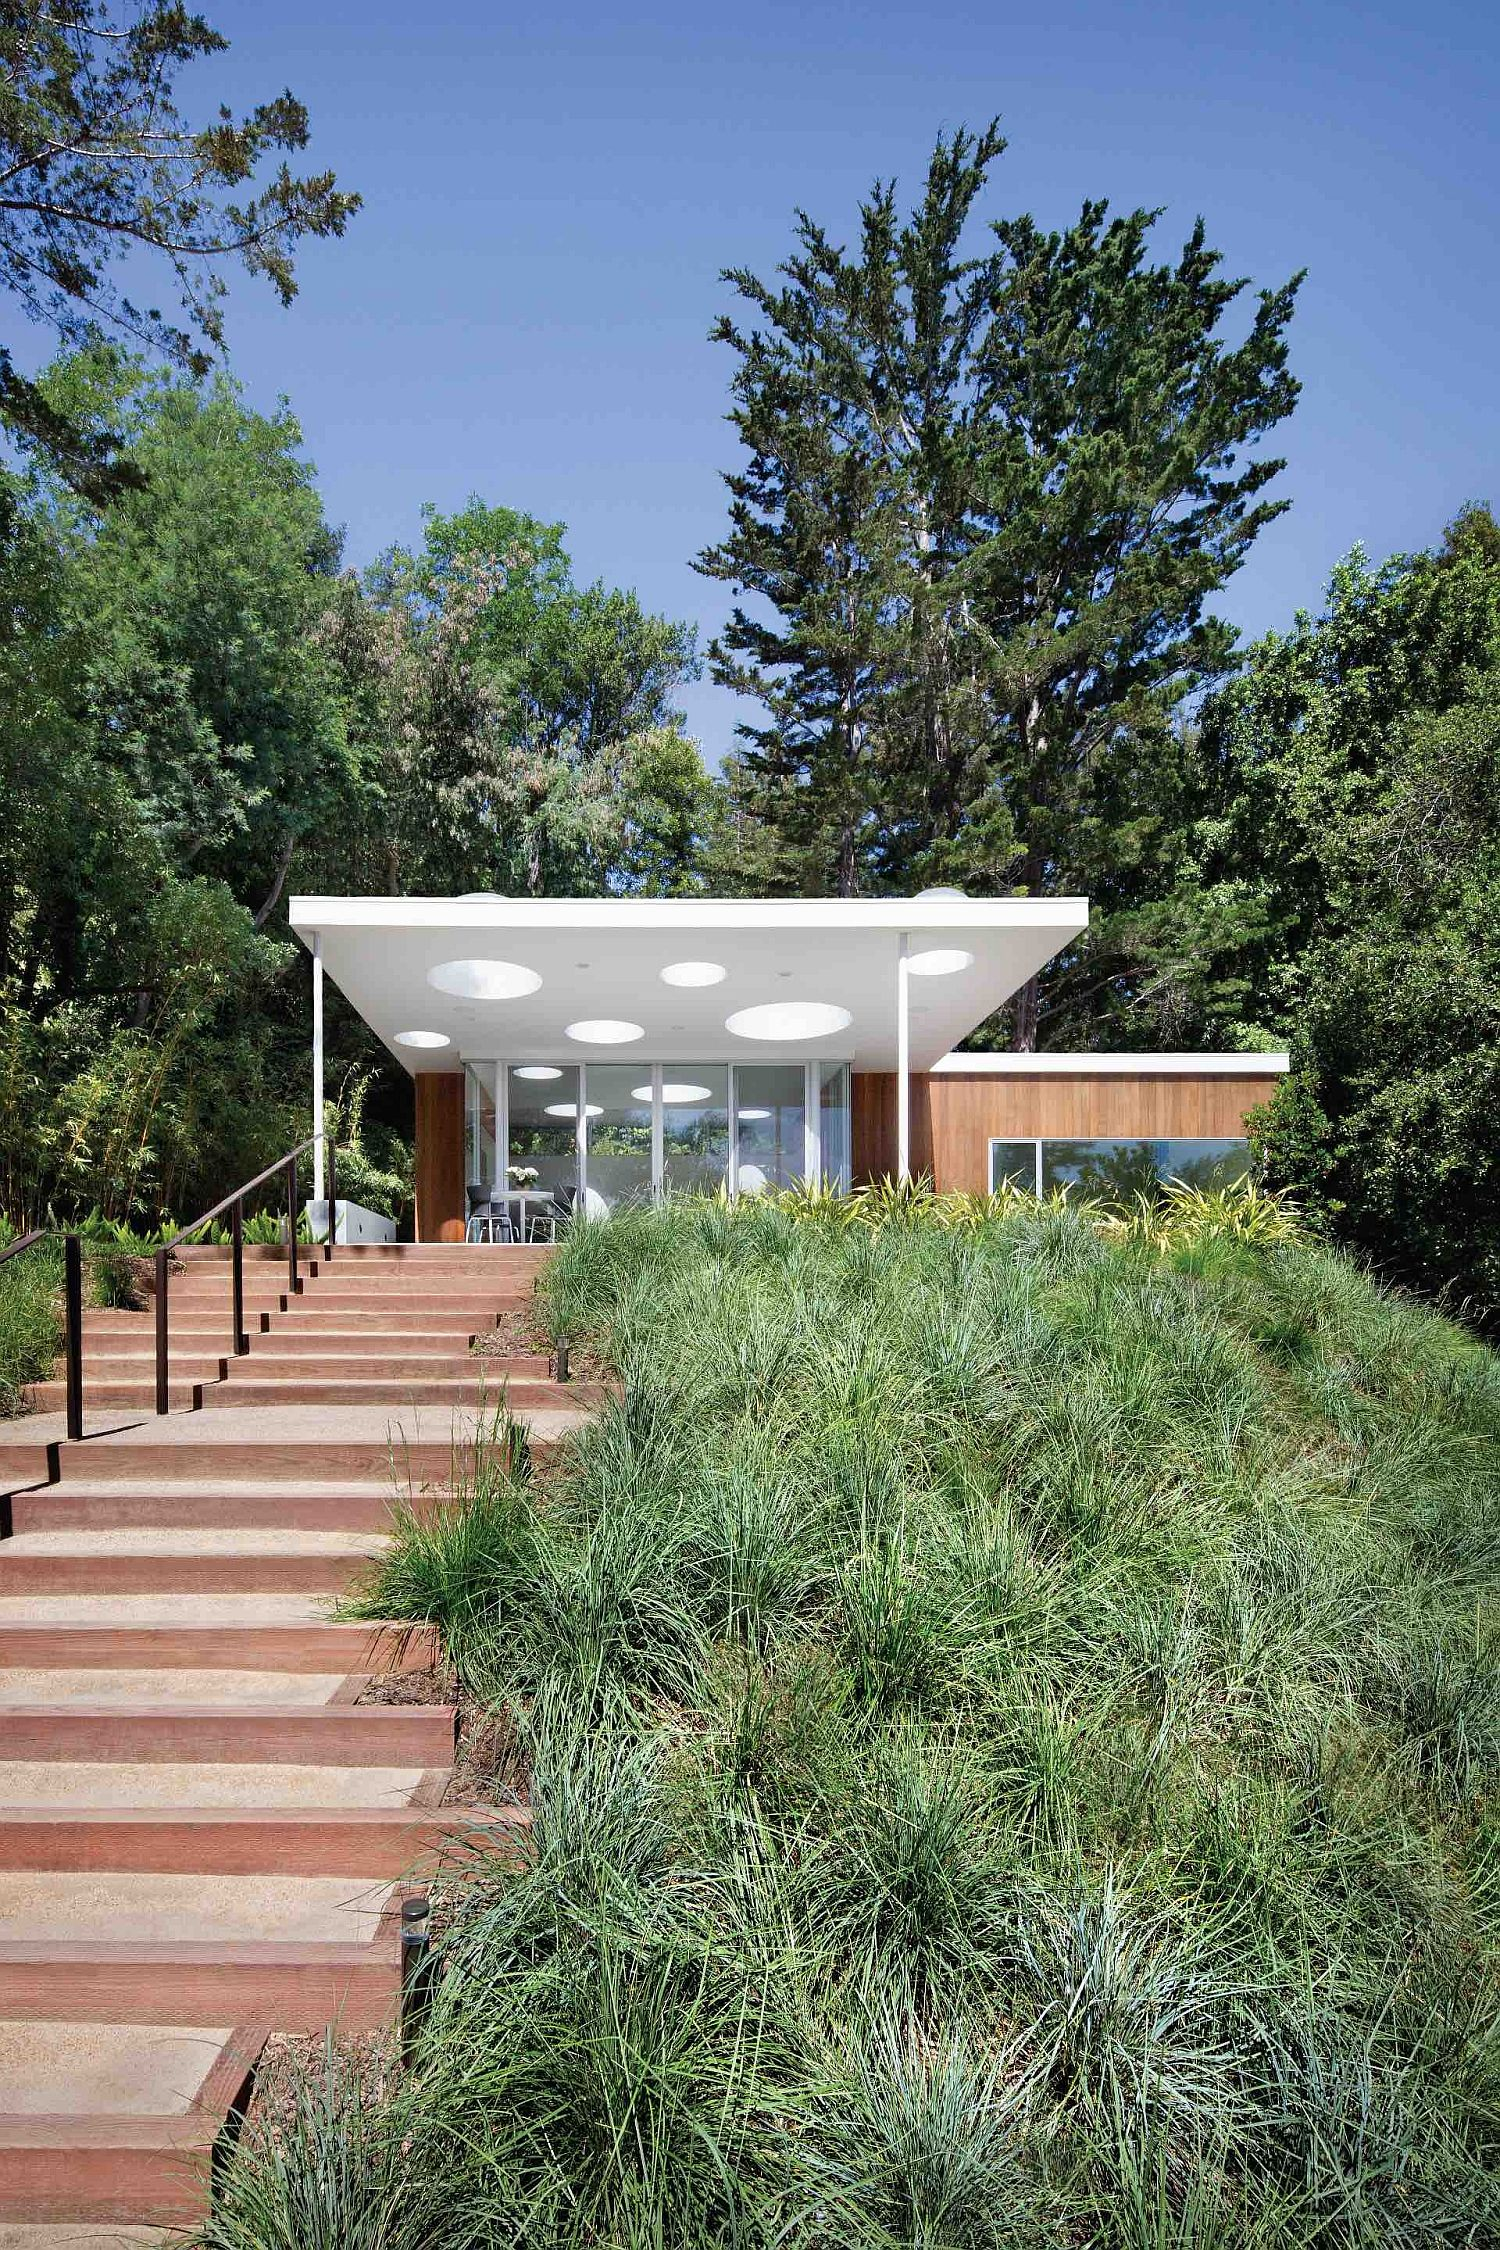 Cedar-and-redwood-trees-along-with-lush-green-vegetation-surround-the-contemporary-guesthouse